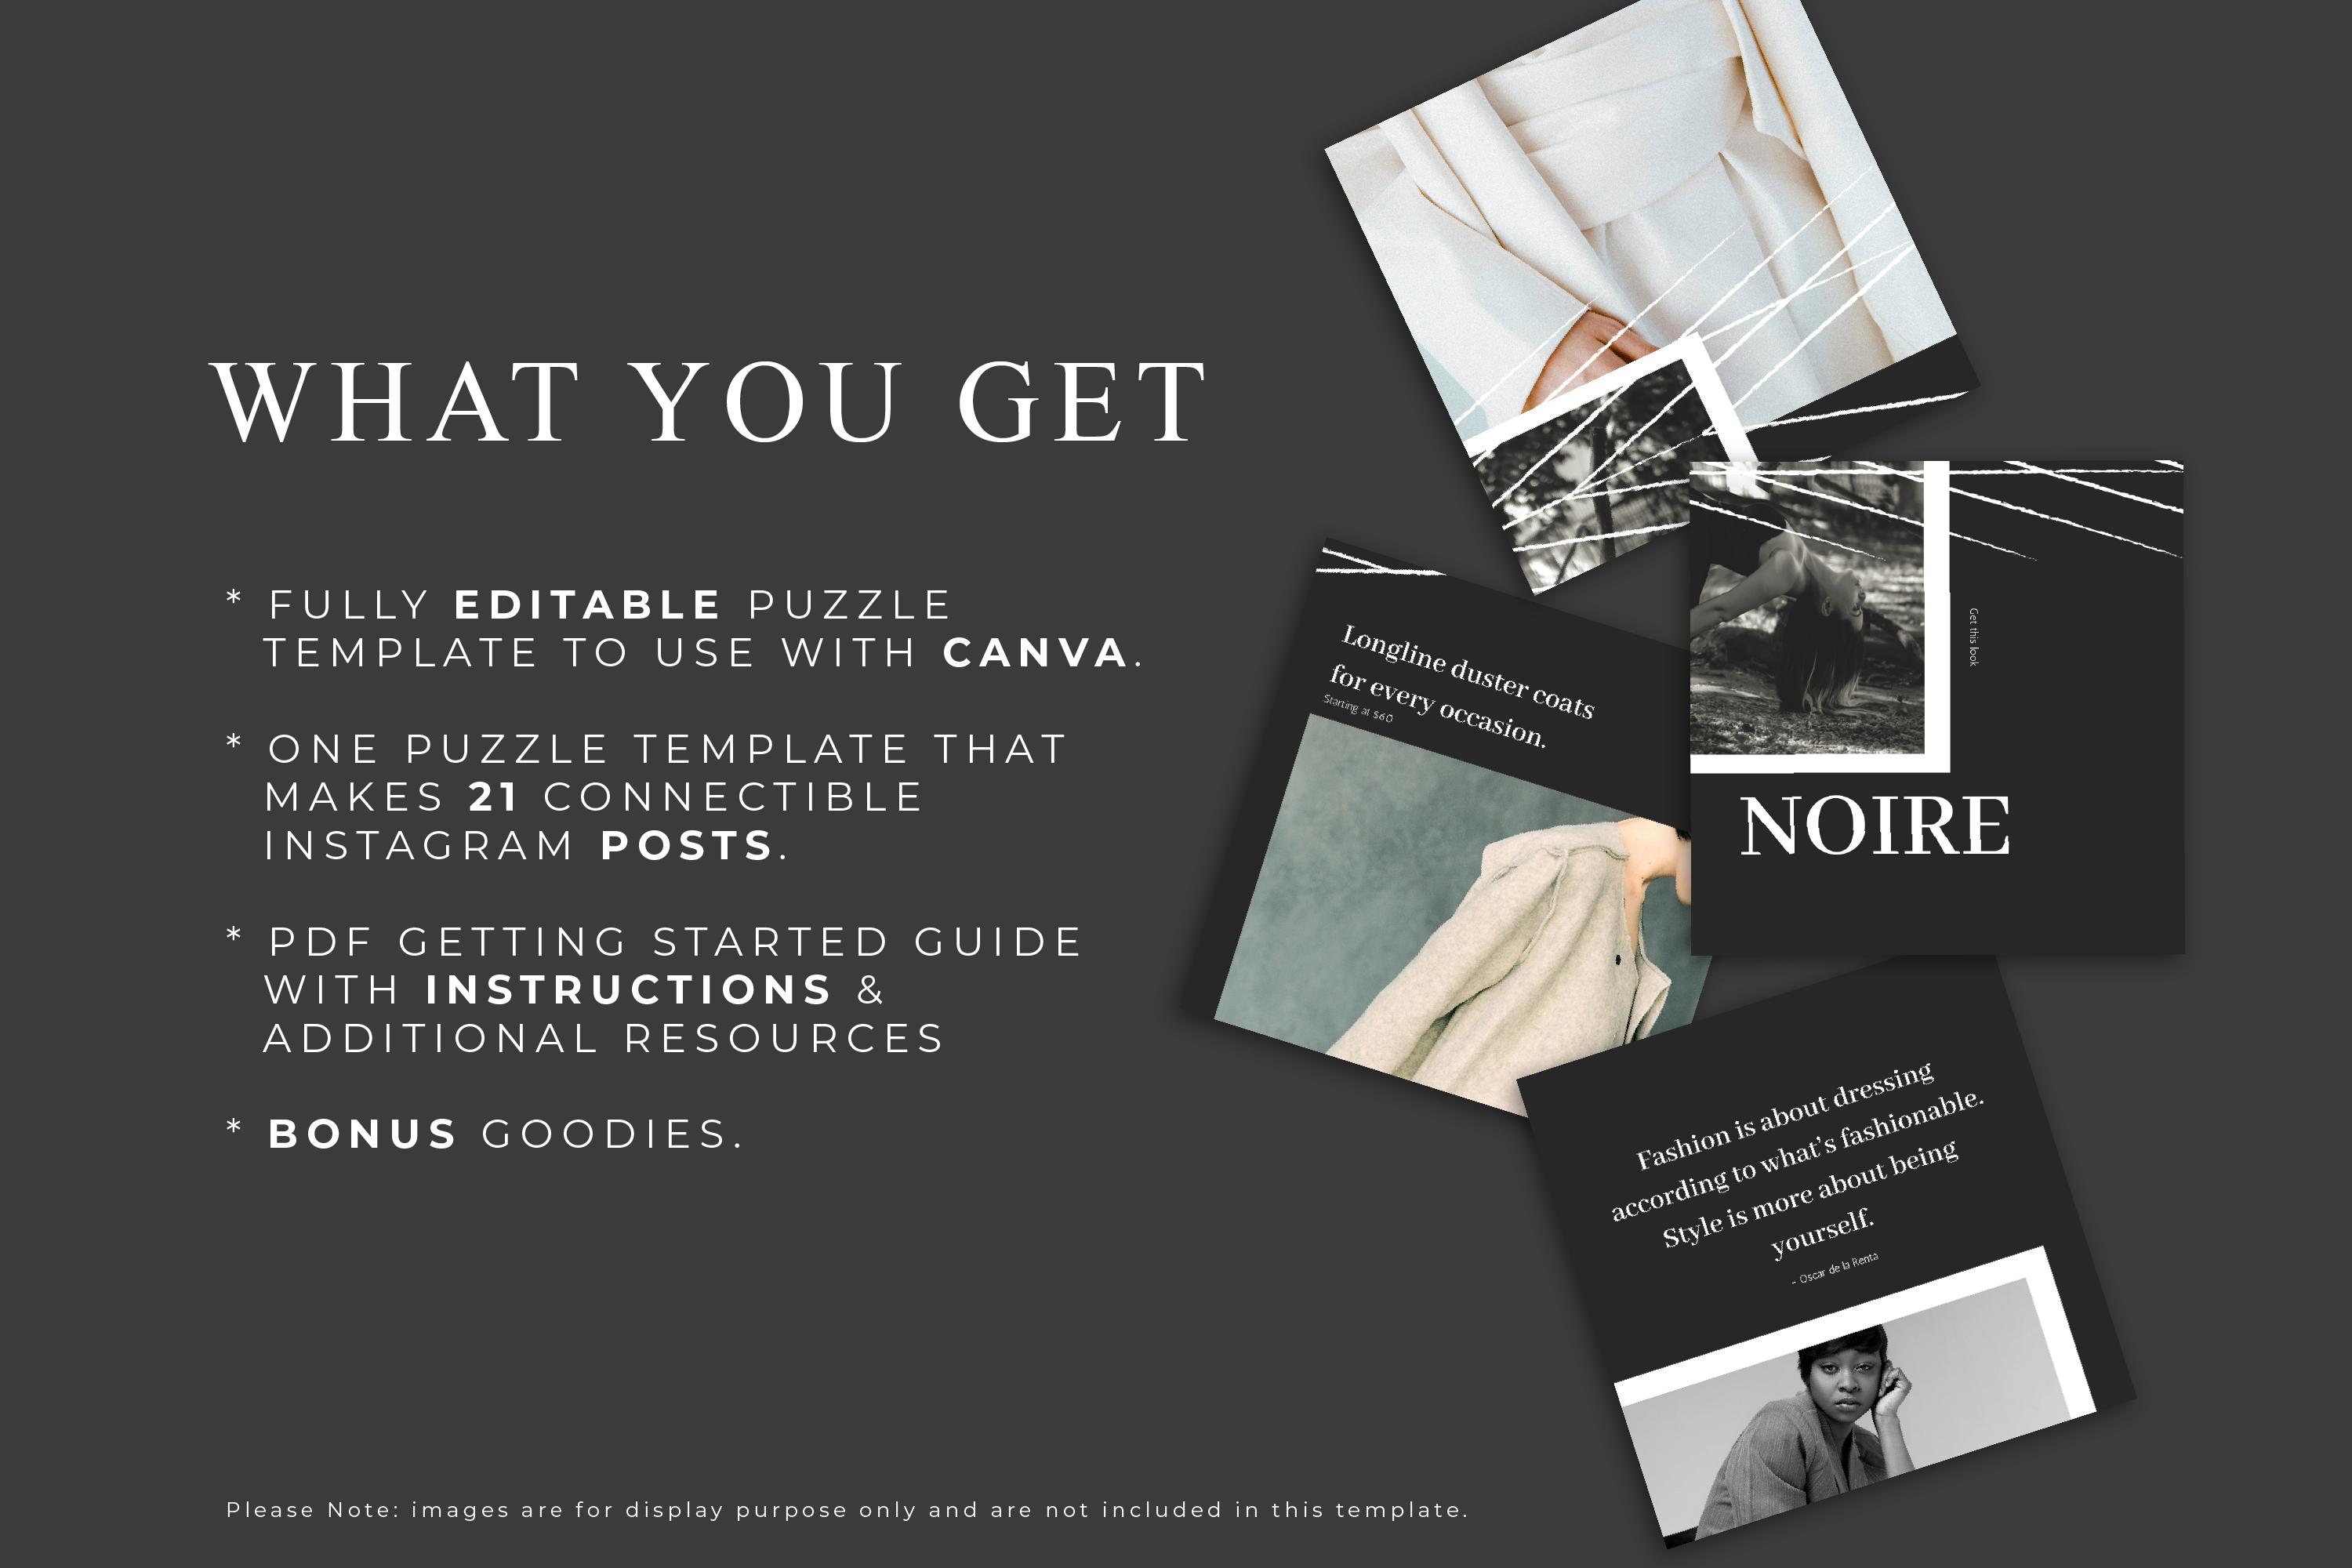 Instagram Puzzle Canva Template - Noire example image 3